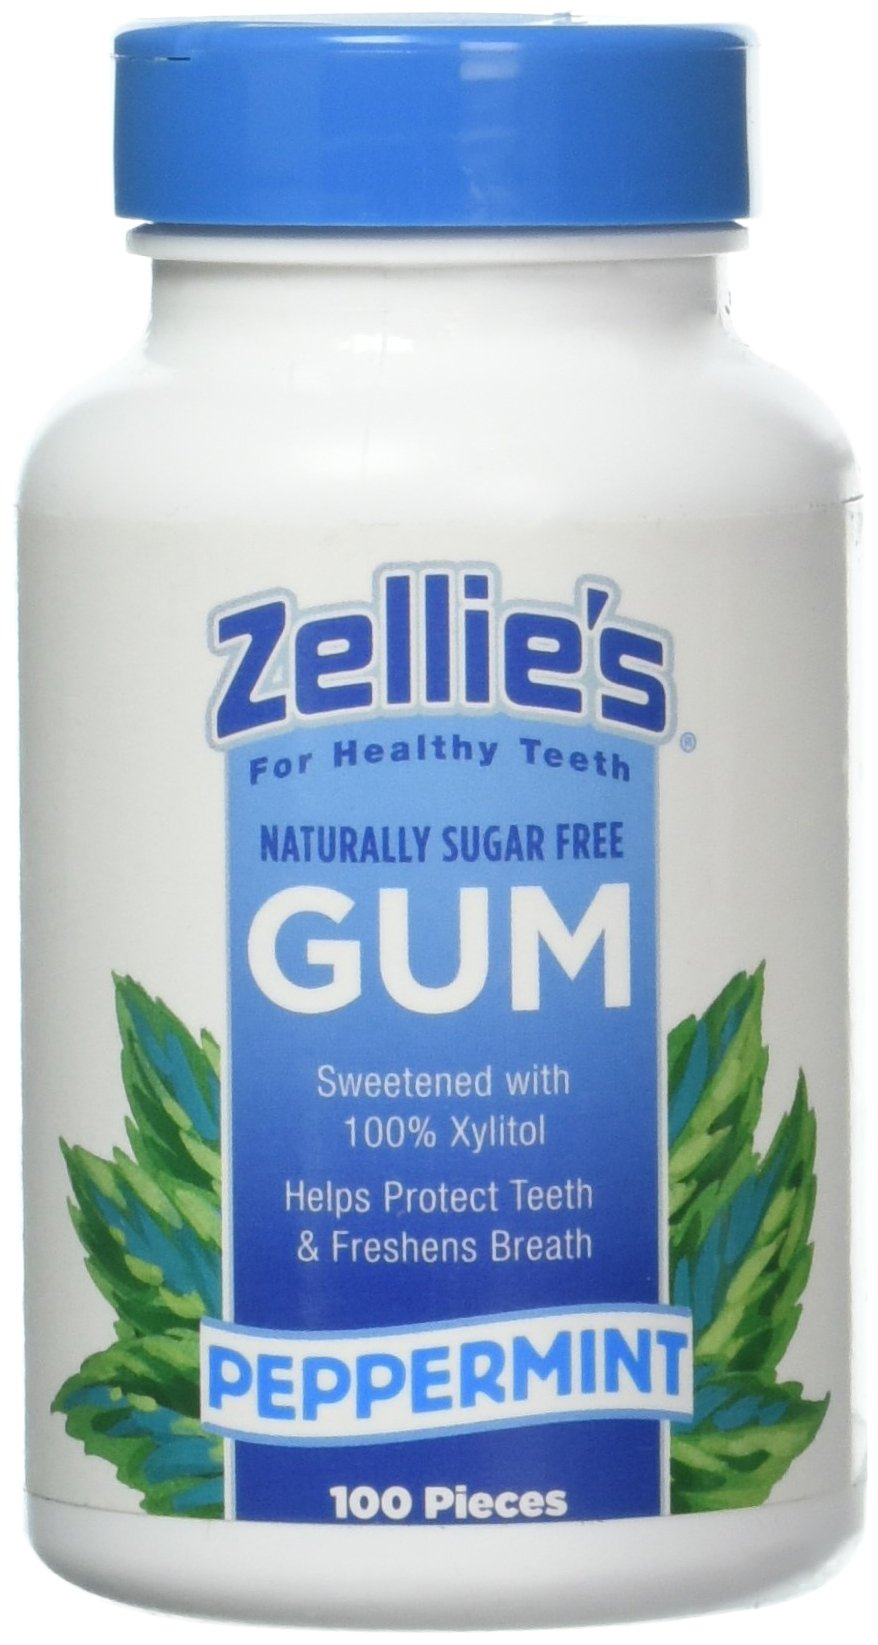 Zellies Peppermint Gum, 100 Count Jar